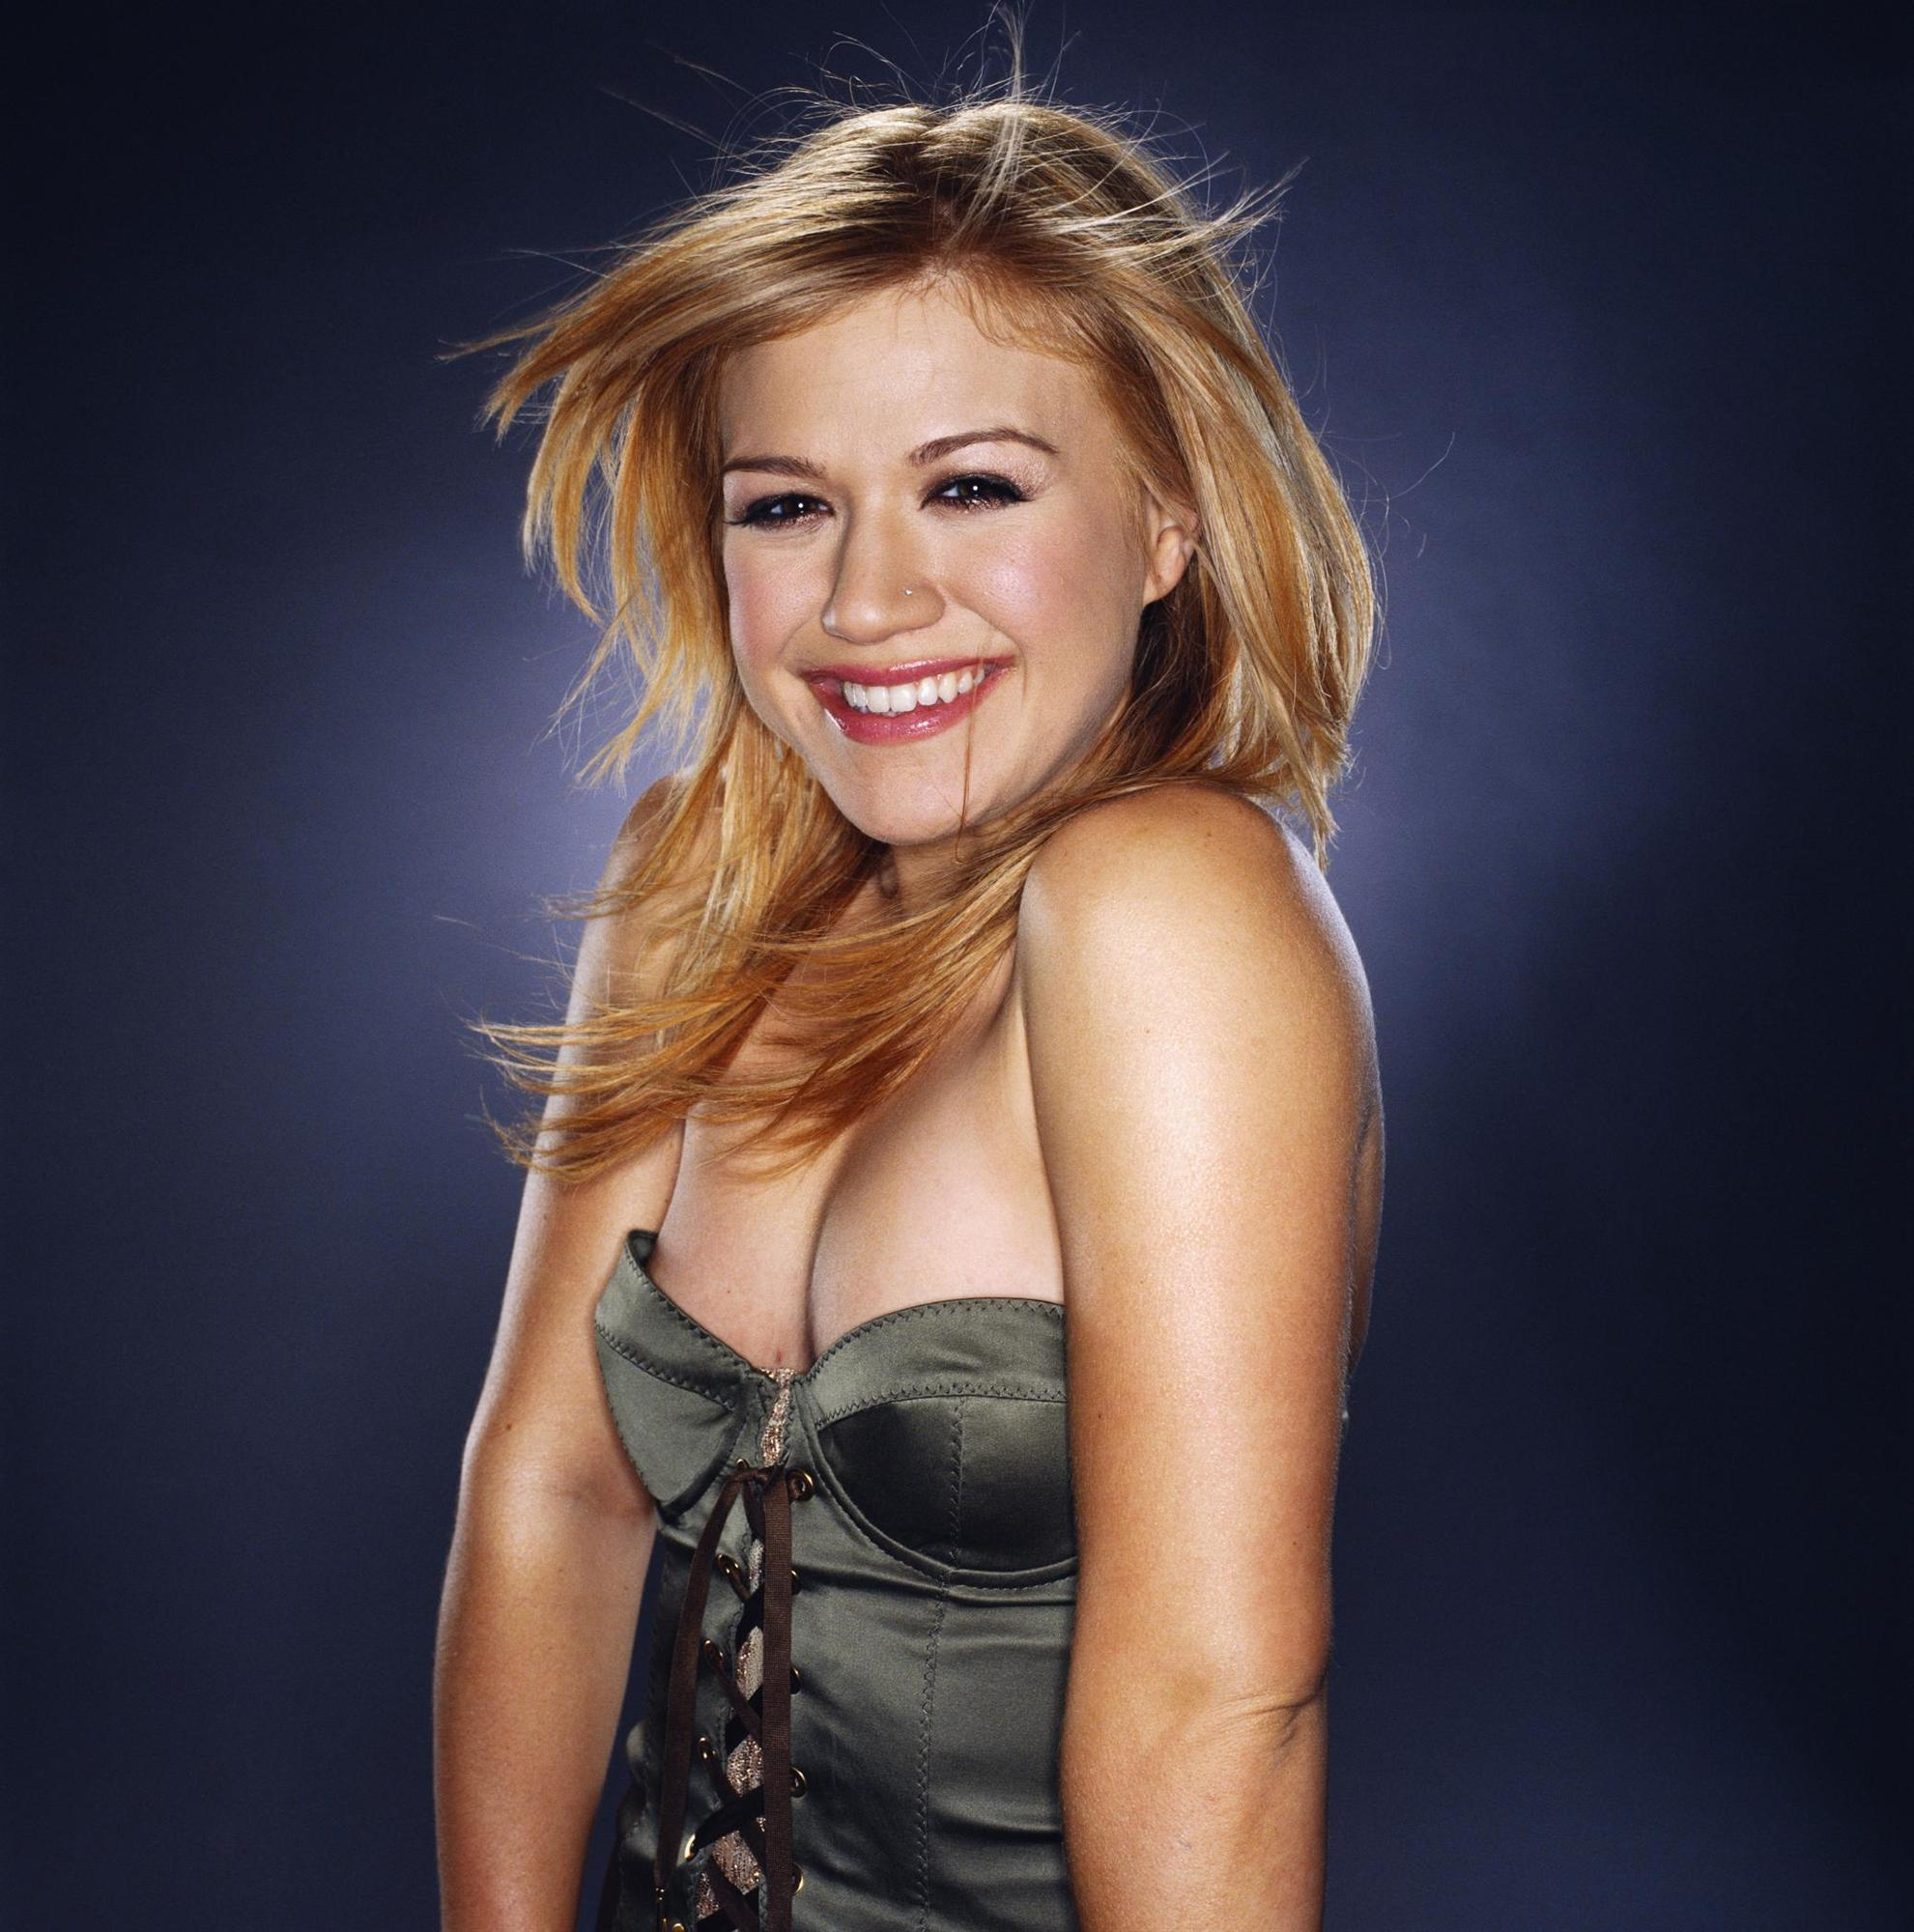 Kelly Clarkson Backgrounds